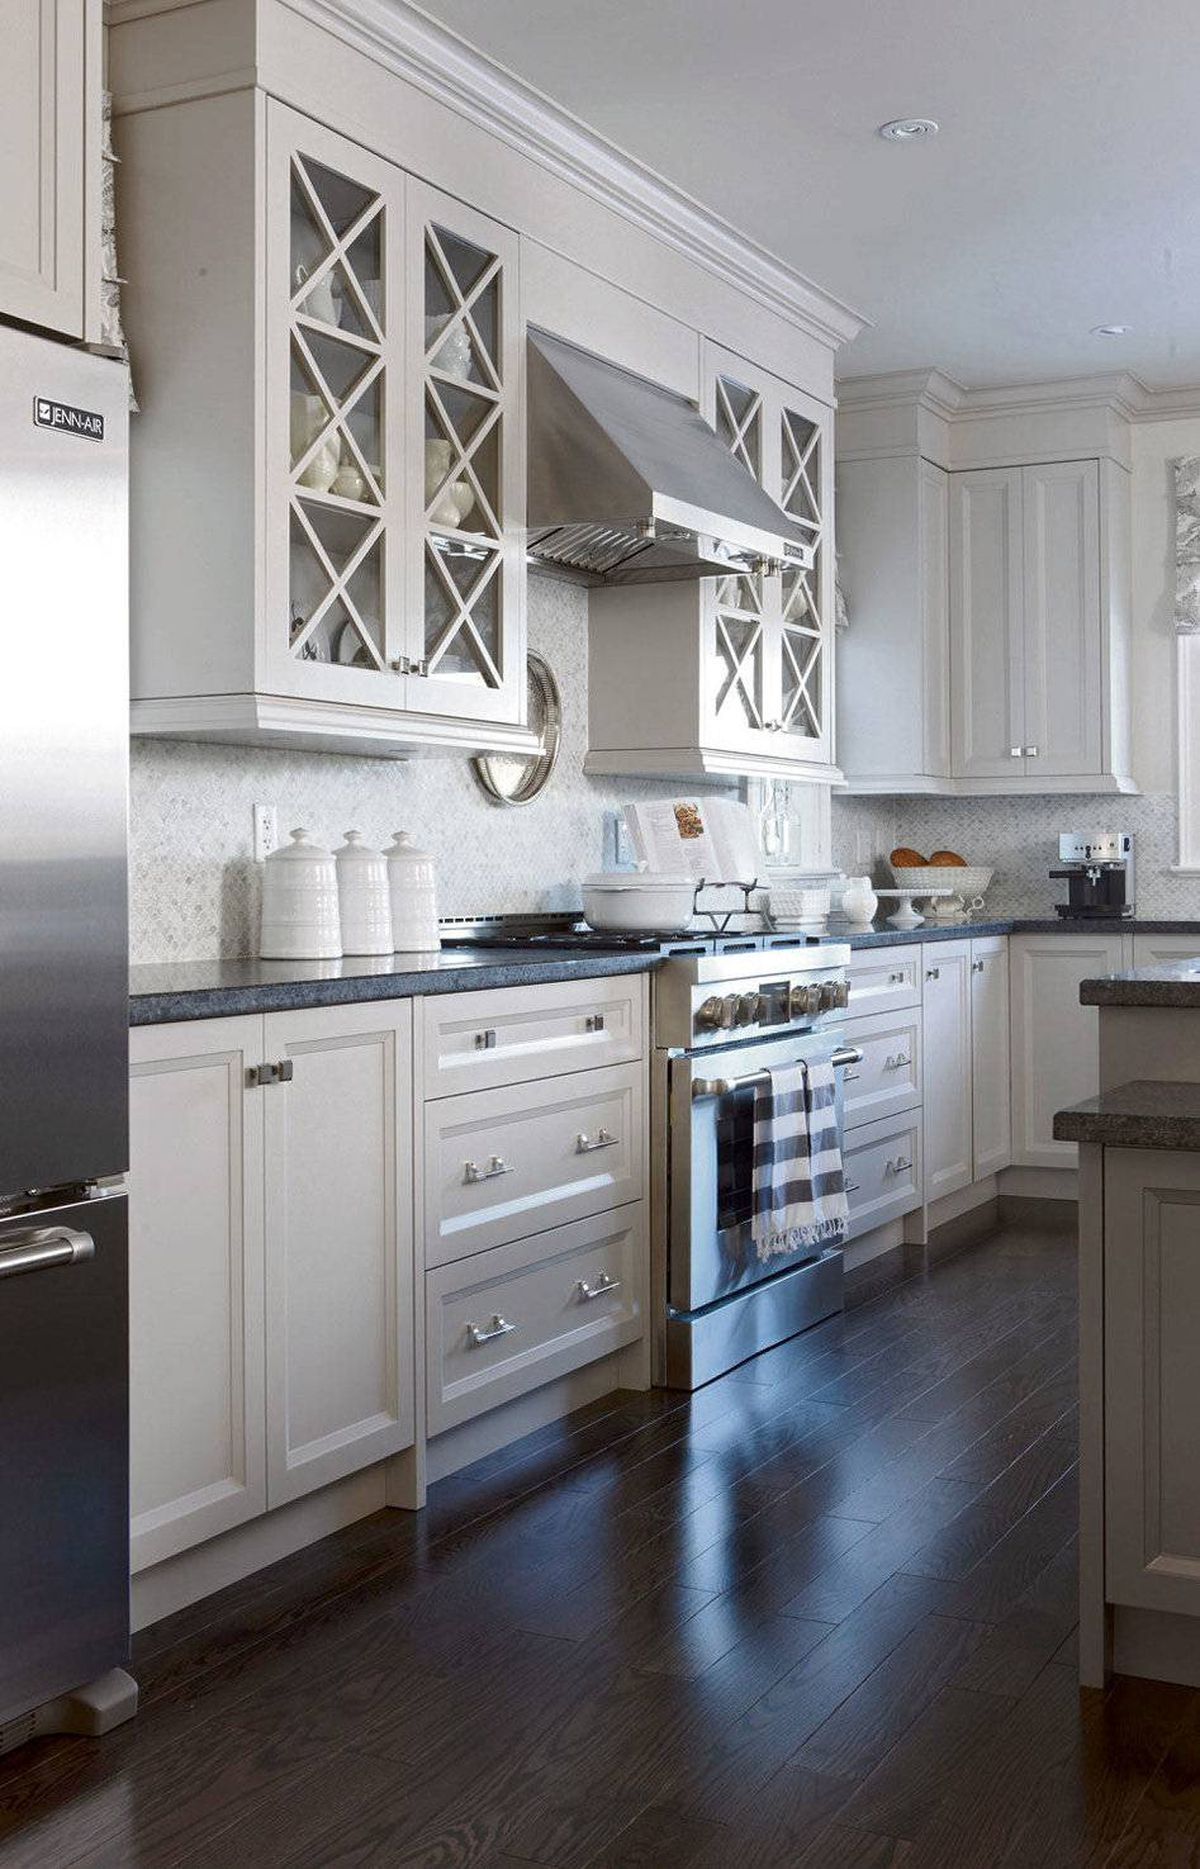 SIMPLE INTERVENTIONS Mouldings and trim details are the hallmarks of a custom builder, yet can easily be added to give rooms more stateliness.